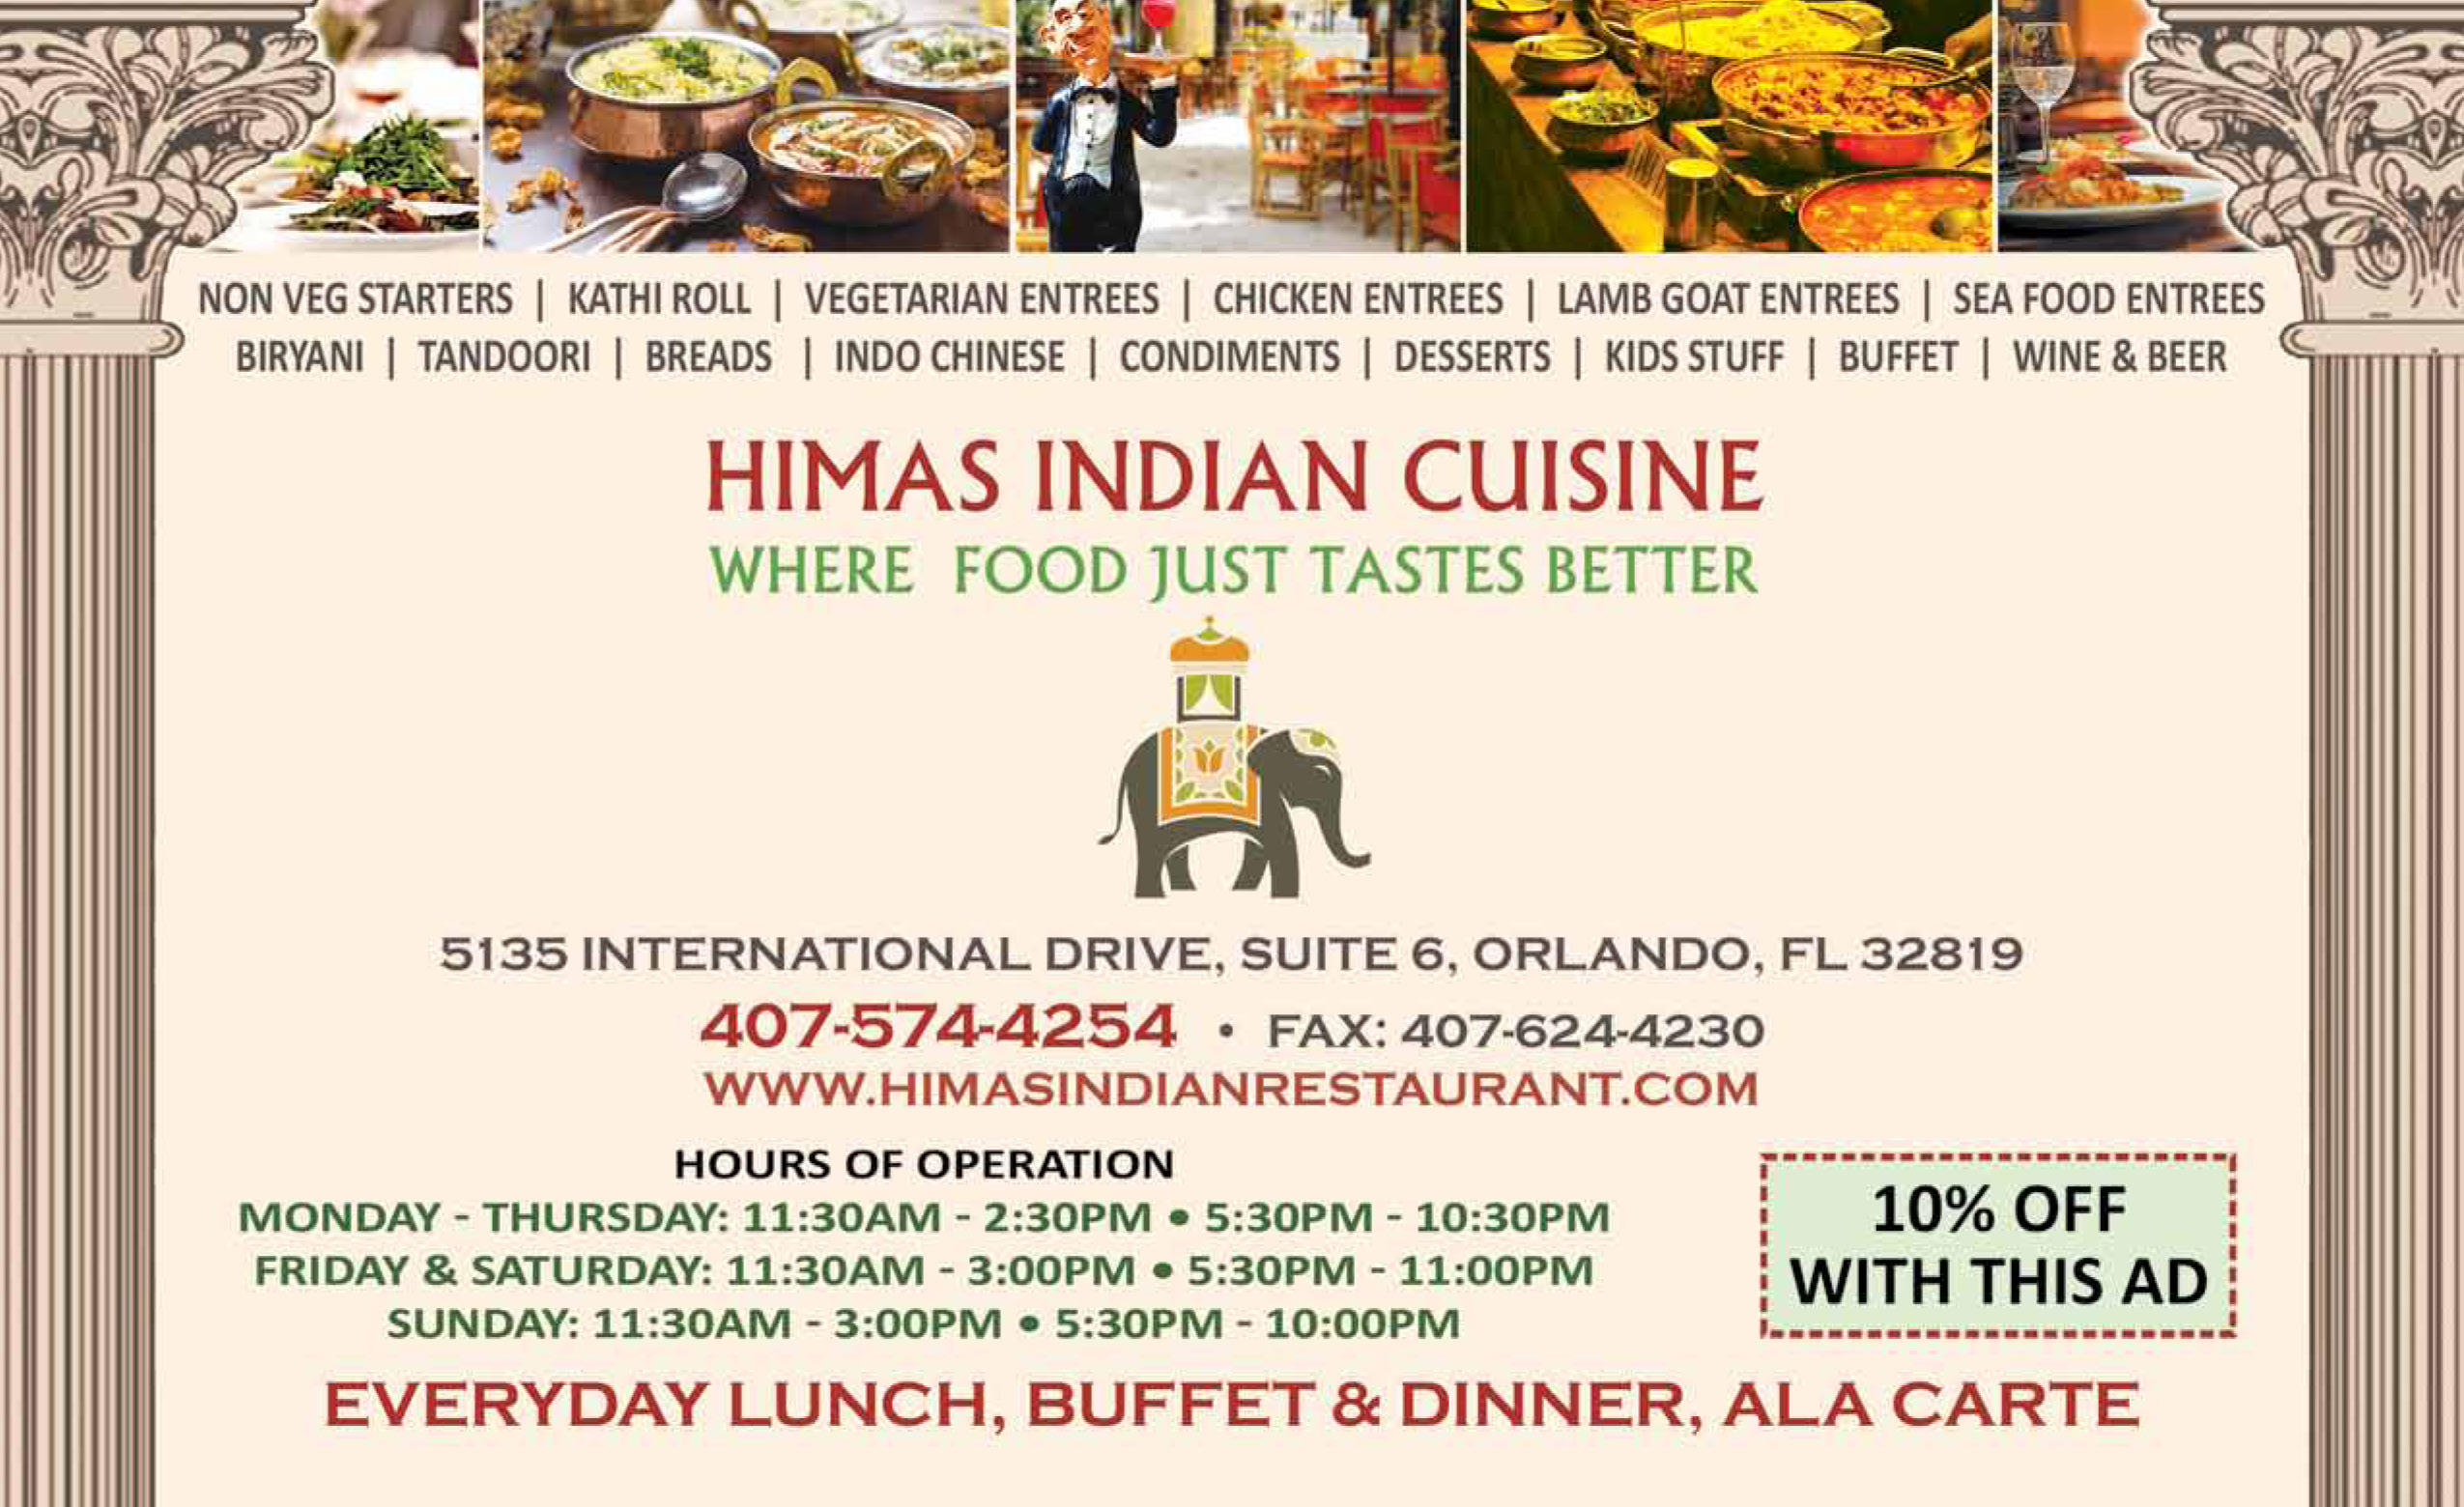 Himas indian cuisine